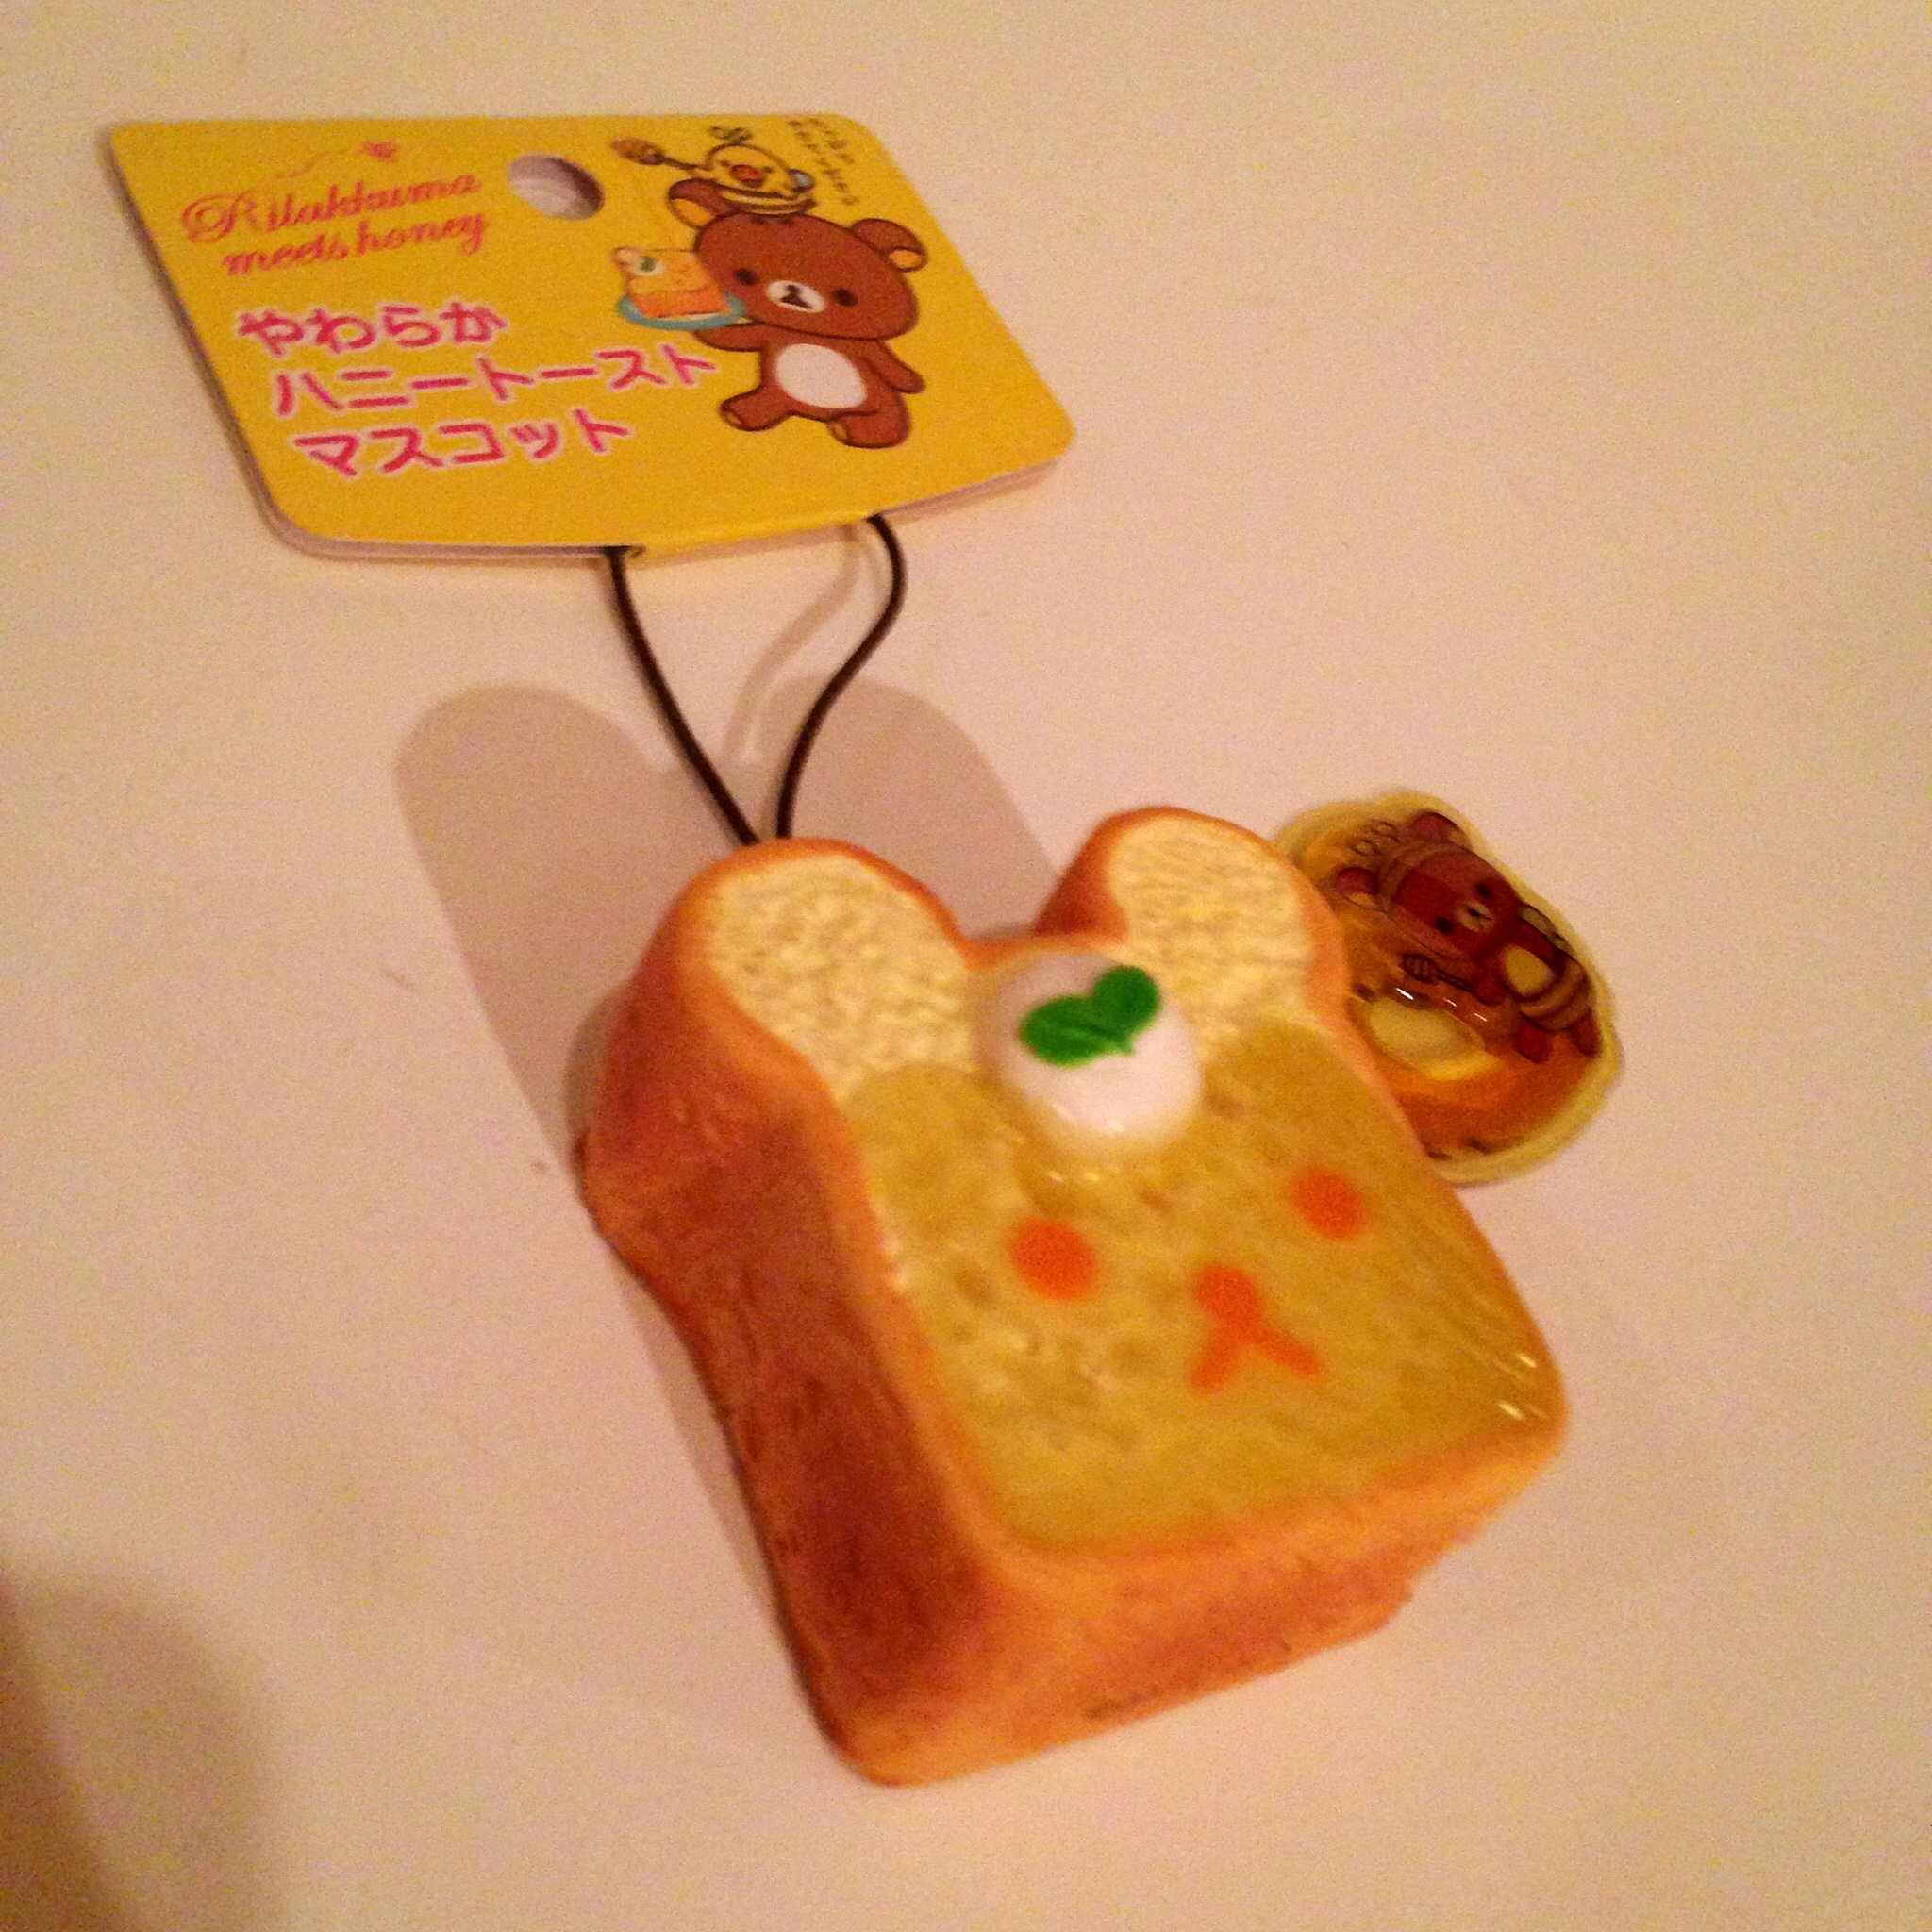 Super rare and cute rk honey toast squishy ? SuzyCupcake ? Online Store Powered by Storenvy